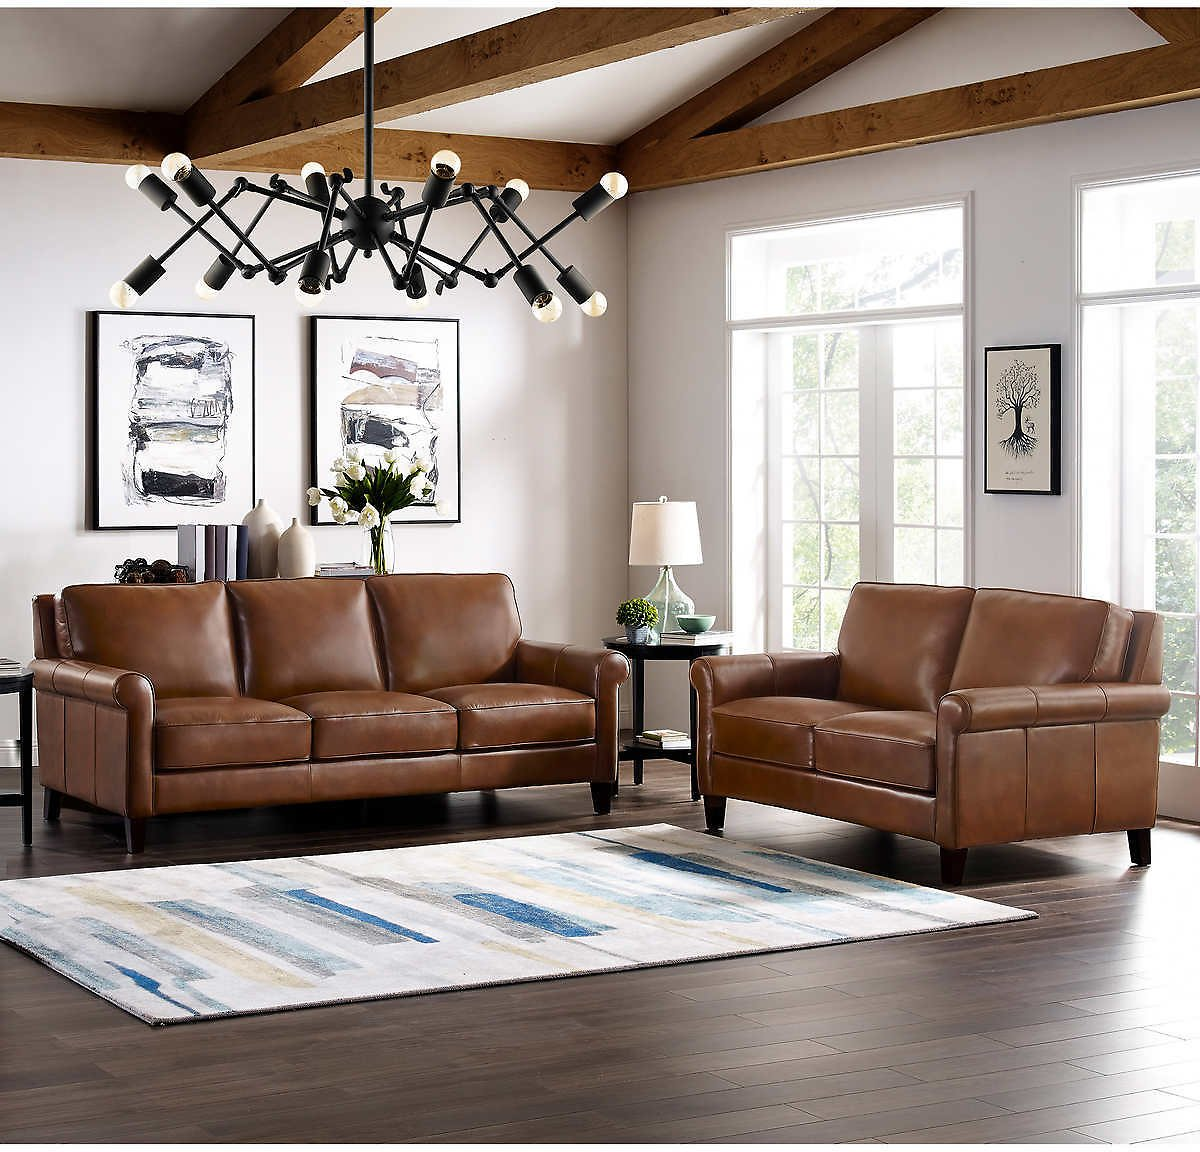 Up to $1,600 Off Costco Furniture Event